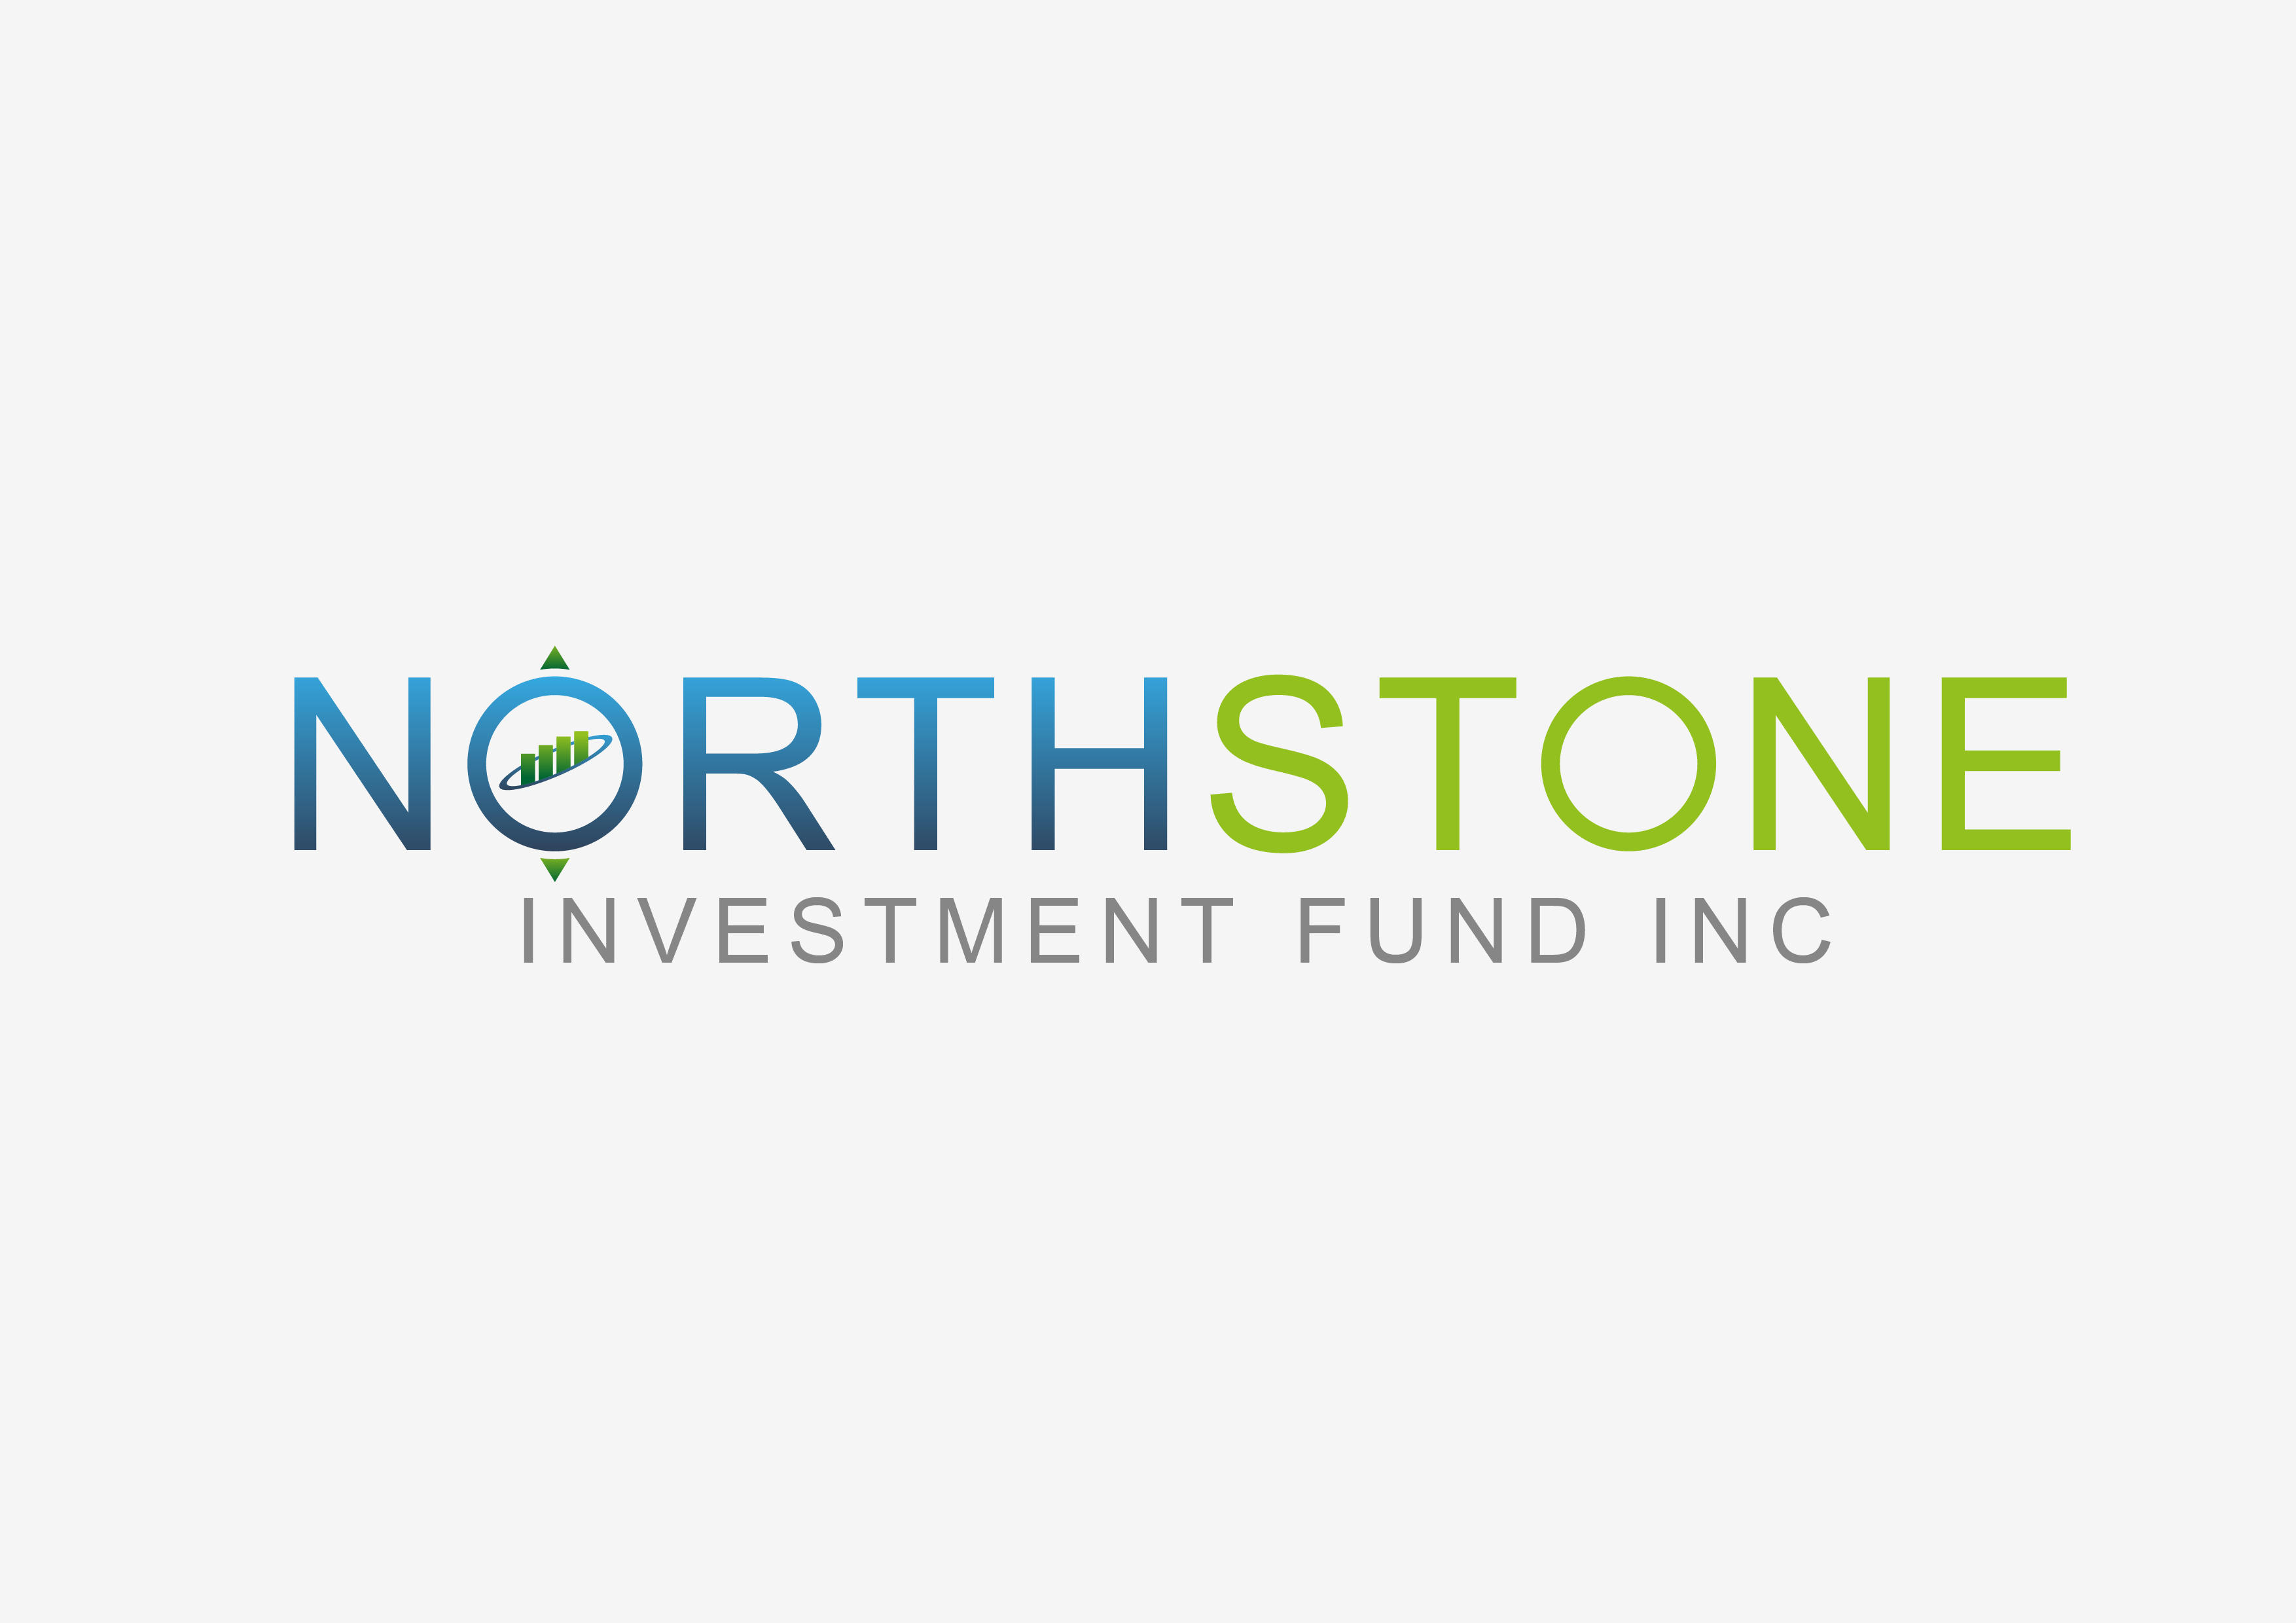 Logo Design by 3draw - Entry No. 173 in the Logo Design Contest Unique Logo Design Wanted for NorthStone Investment Fund Inc.